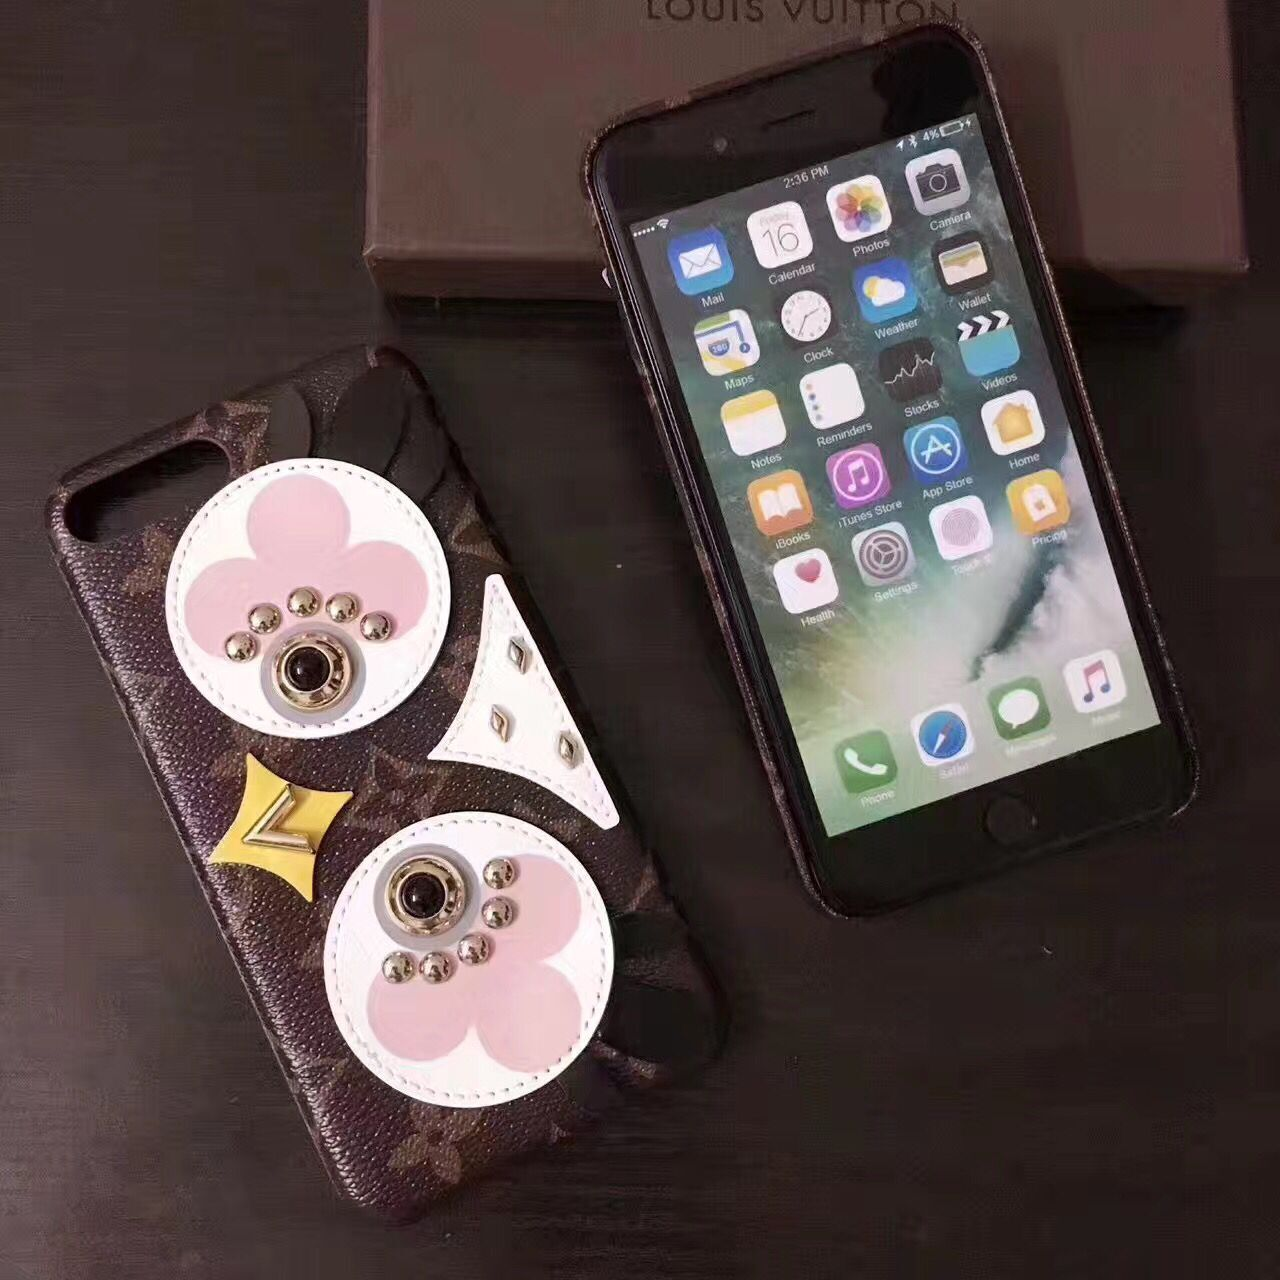 original iphone hülle iphone hülle leder Louis Vuitton iphone7 Plus hülle personalisierte iphone 7 Plus hülle apple iphone 7 Plus zubehör 7 hutzhülle iphone display iphone 7 Plus tasche ipad tasche leder